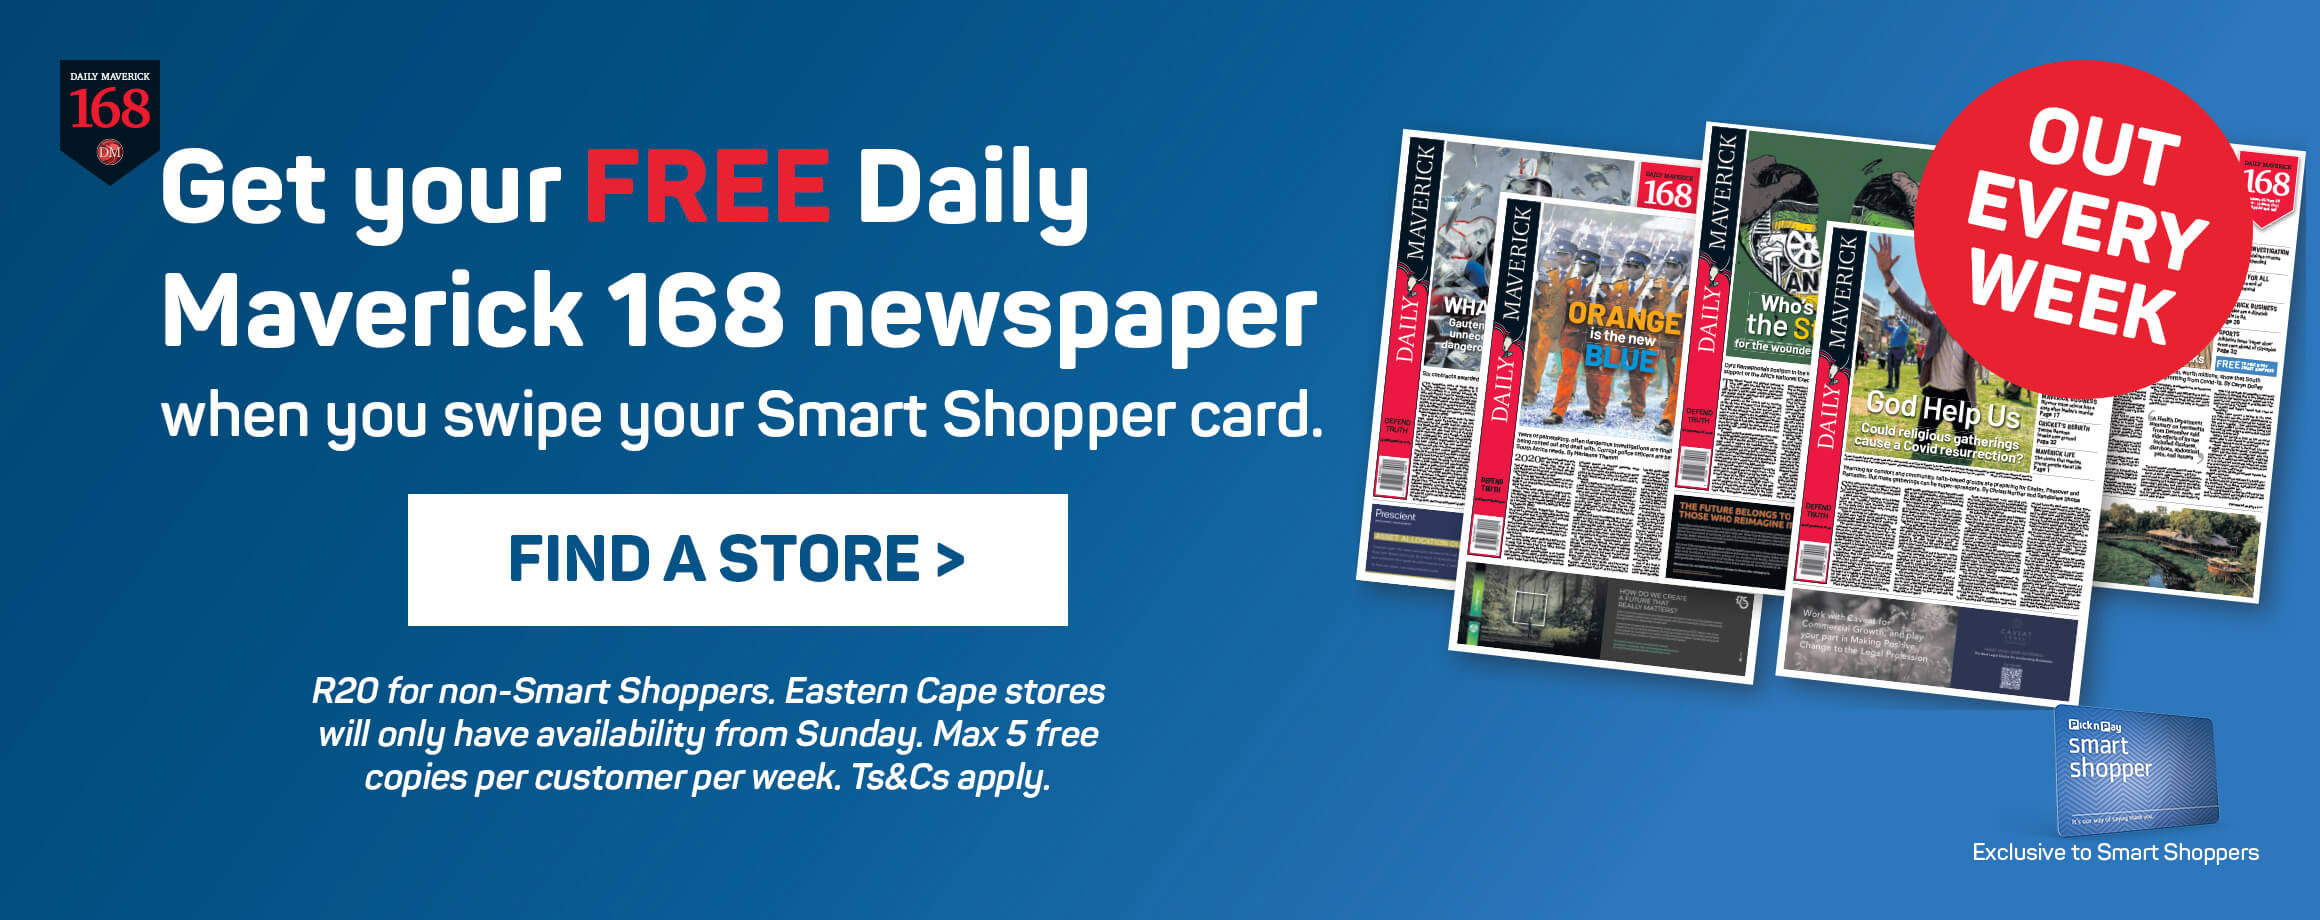 Get your Daily Maverick 168 newspaper when you swipe your Smart Shopper card! Find a store